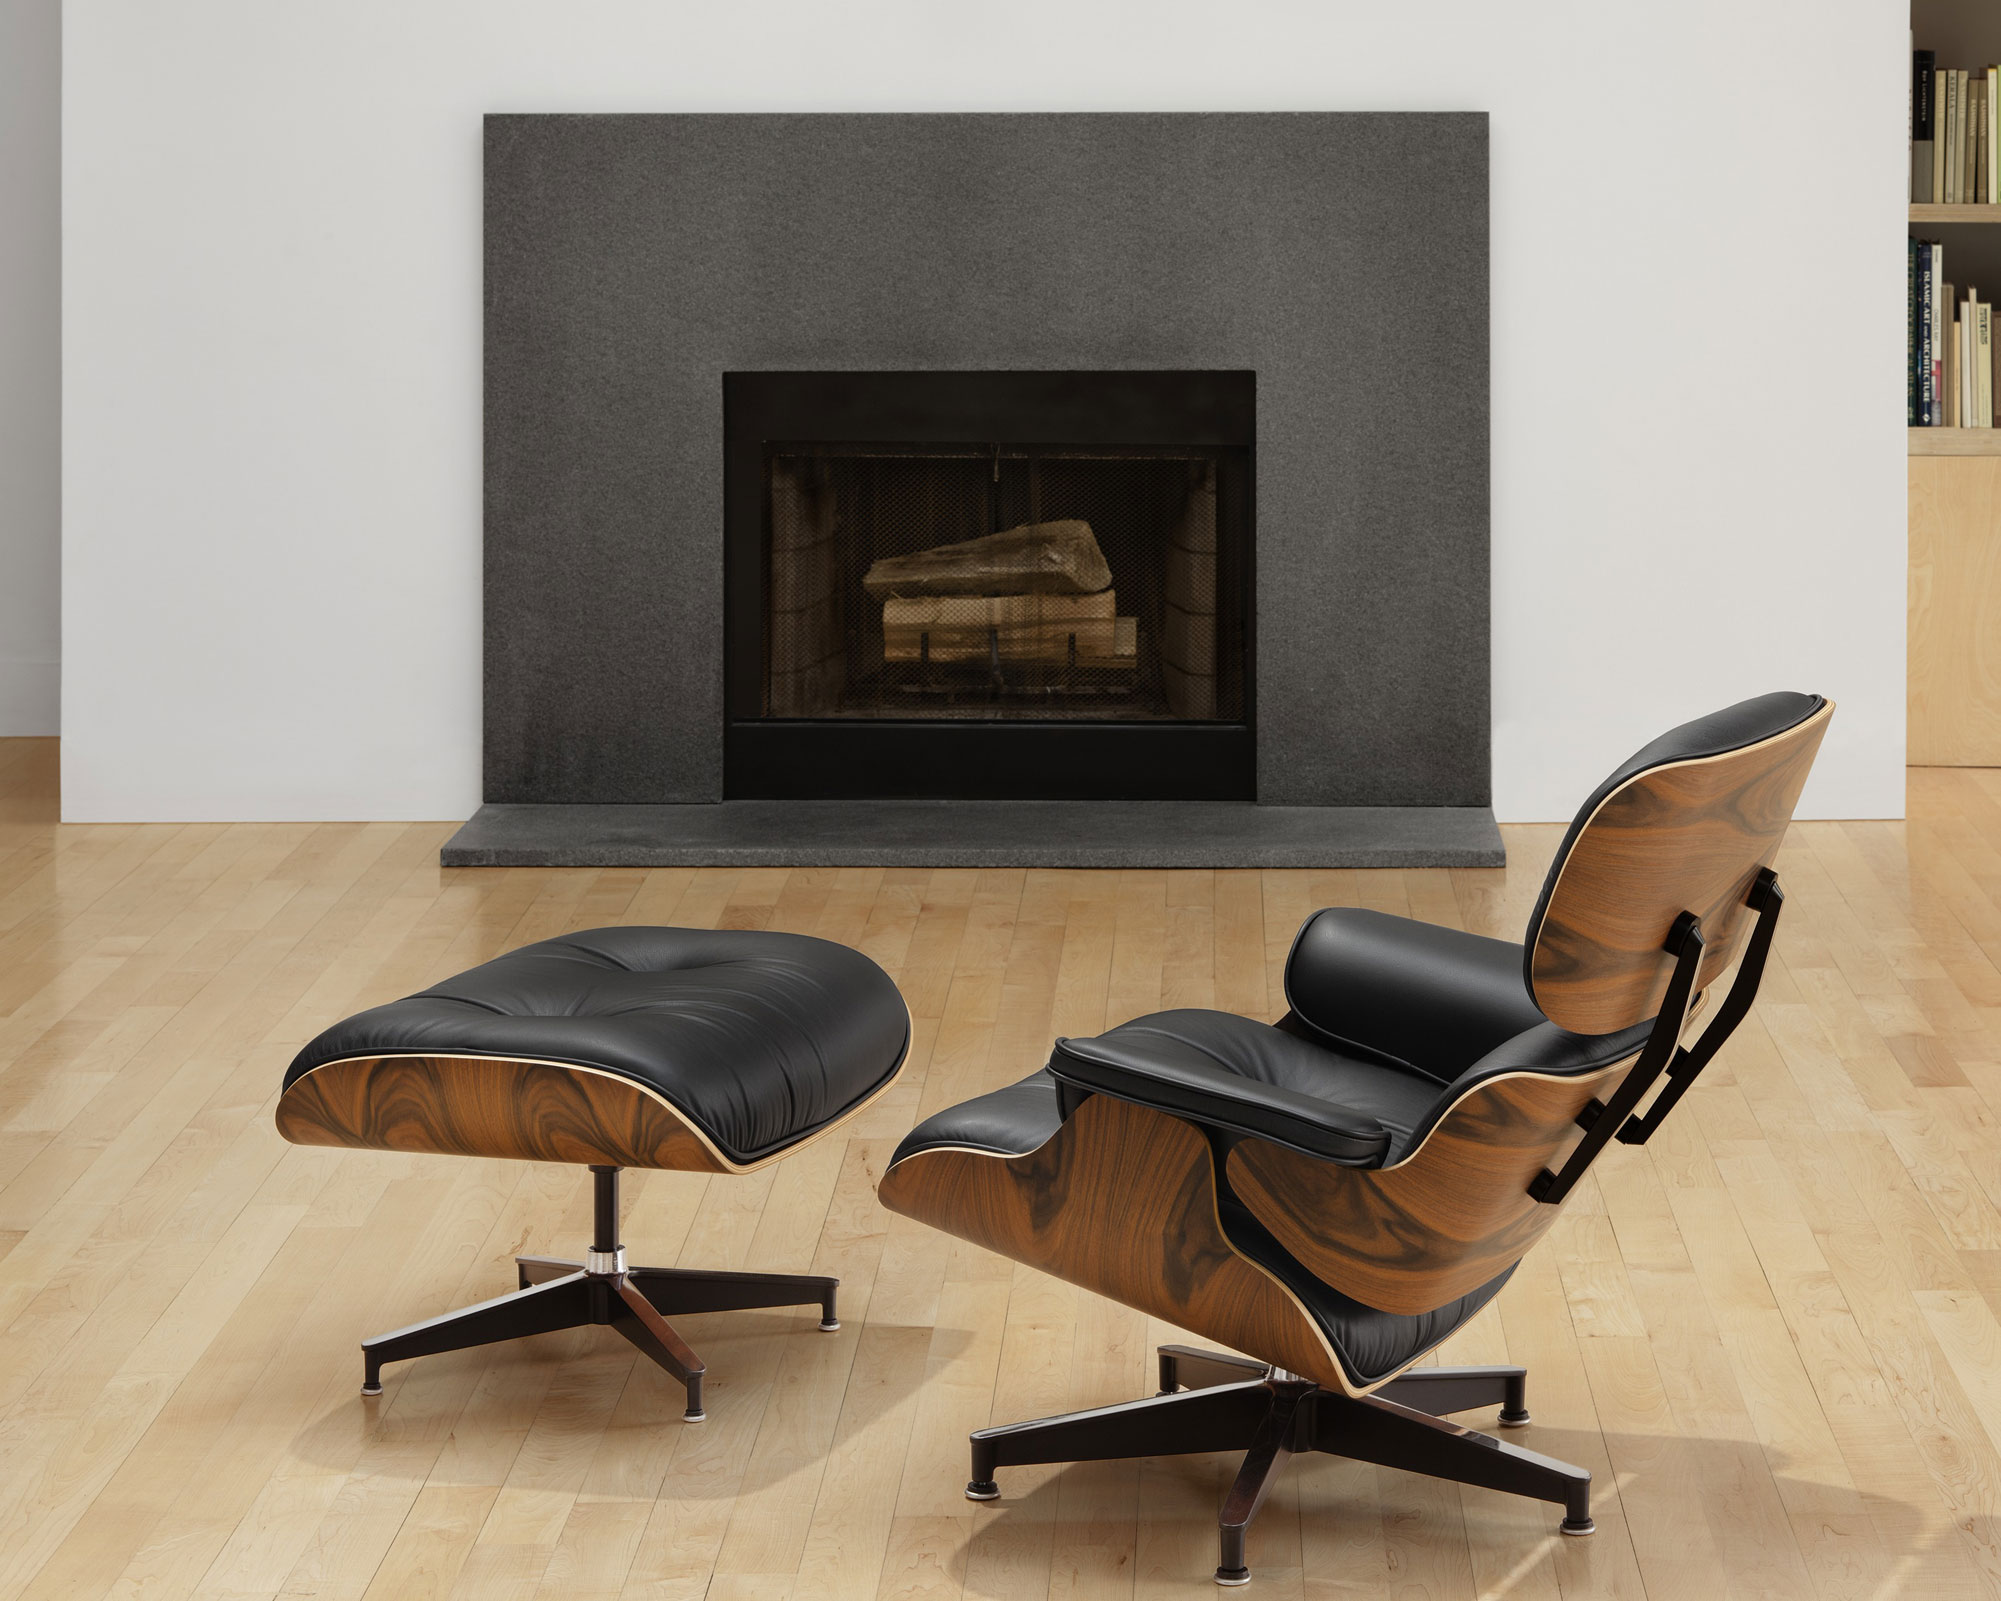 Image of: Eames Lounge Chair and Ottoman